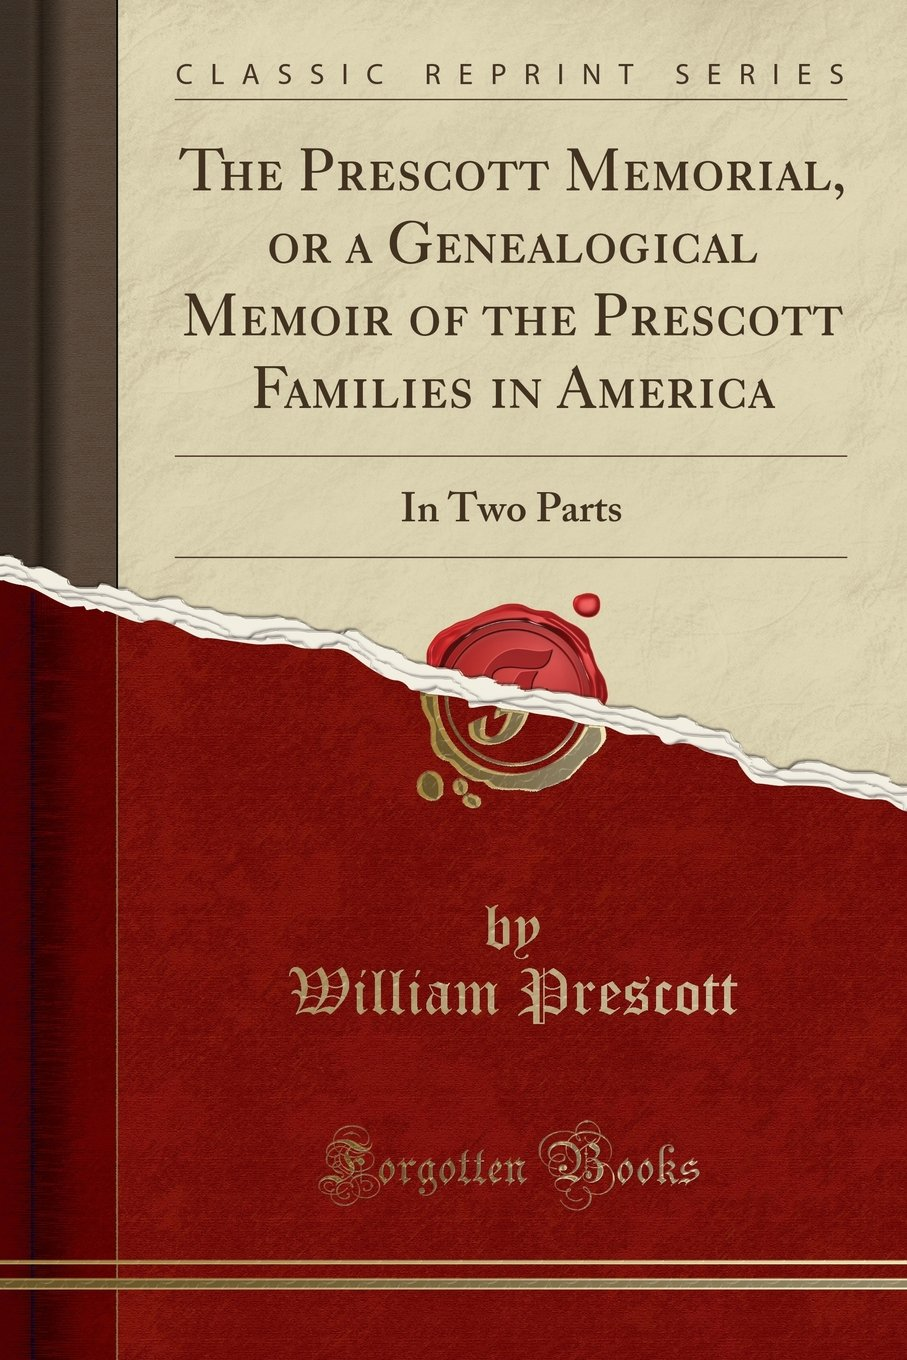 The Prescott Memorial, or a Genealogical Memoir of the Prescott Families in America: In Two Parts (Classic Reprint) PDF